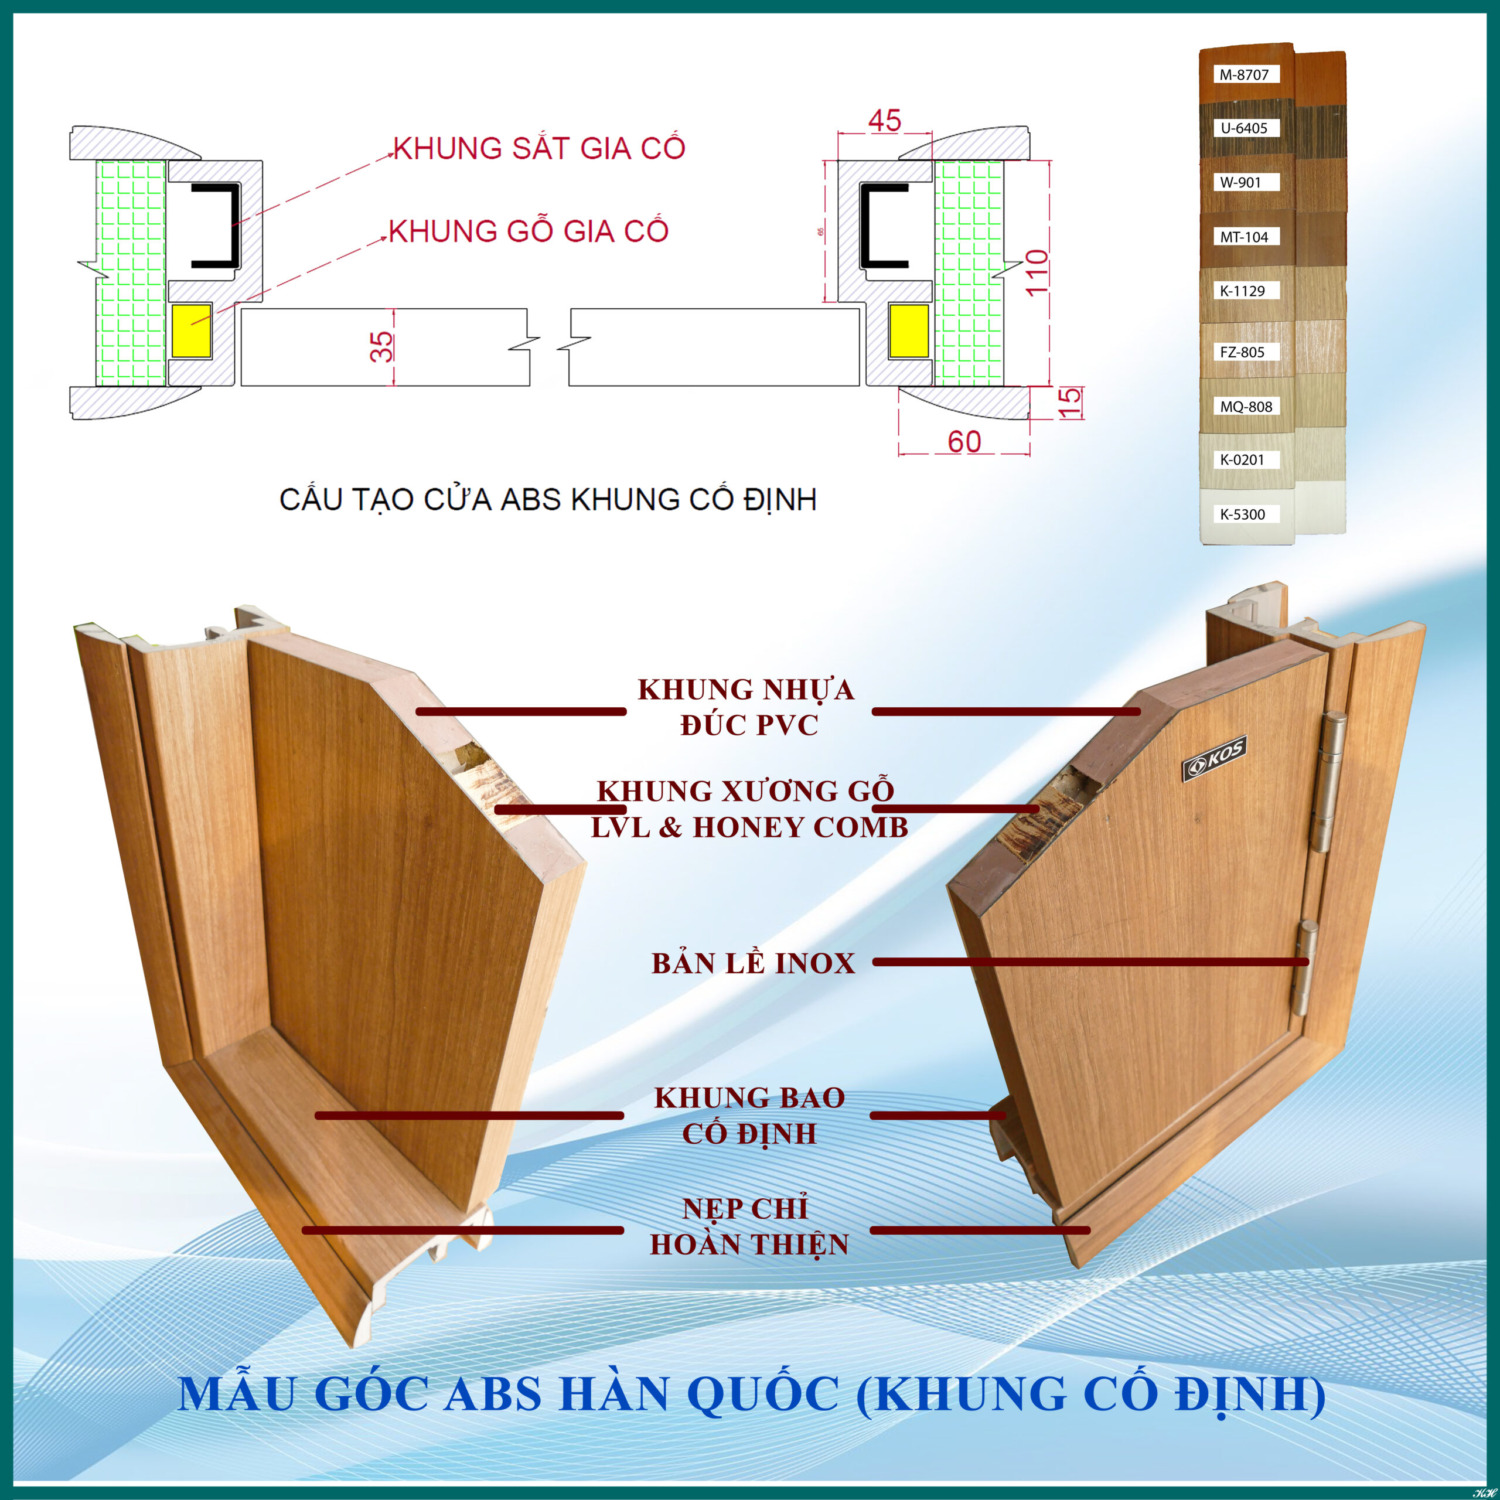 ABS CO DINH scaled